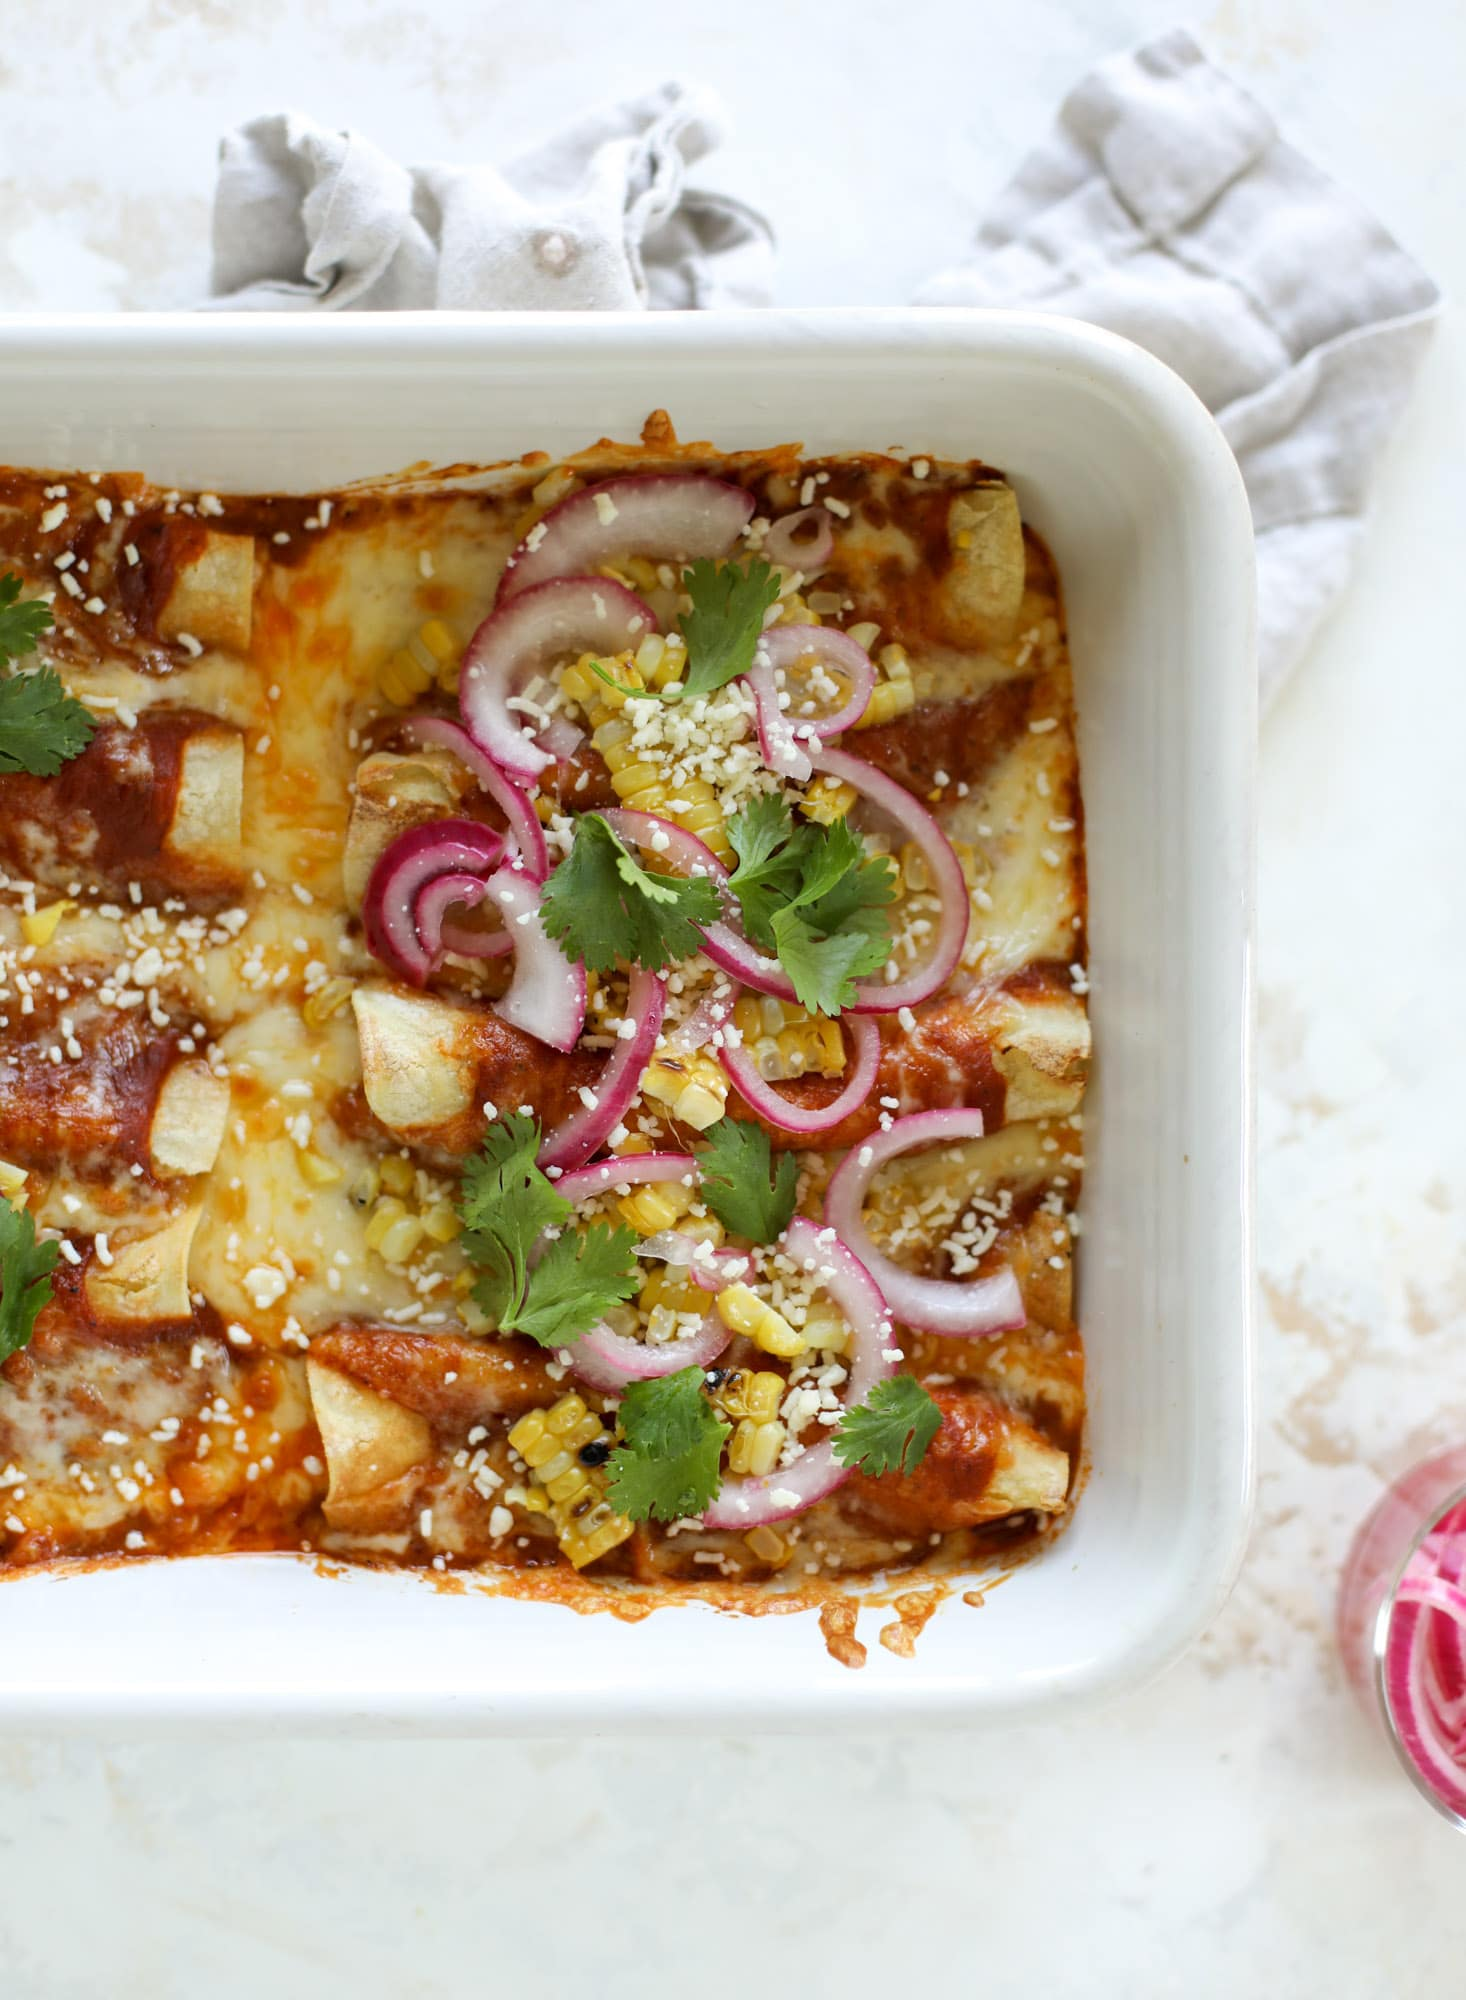 These grilled corn enchiladas are the perfect summer meal! Grilled corn, zucchini, homemade sauce and cheese come together for a flavor explosion!